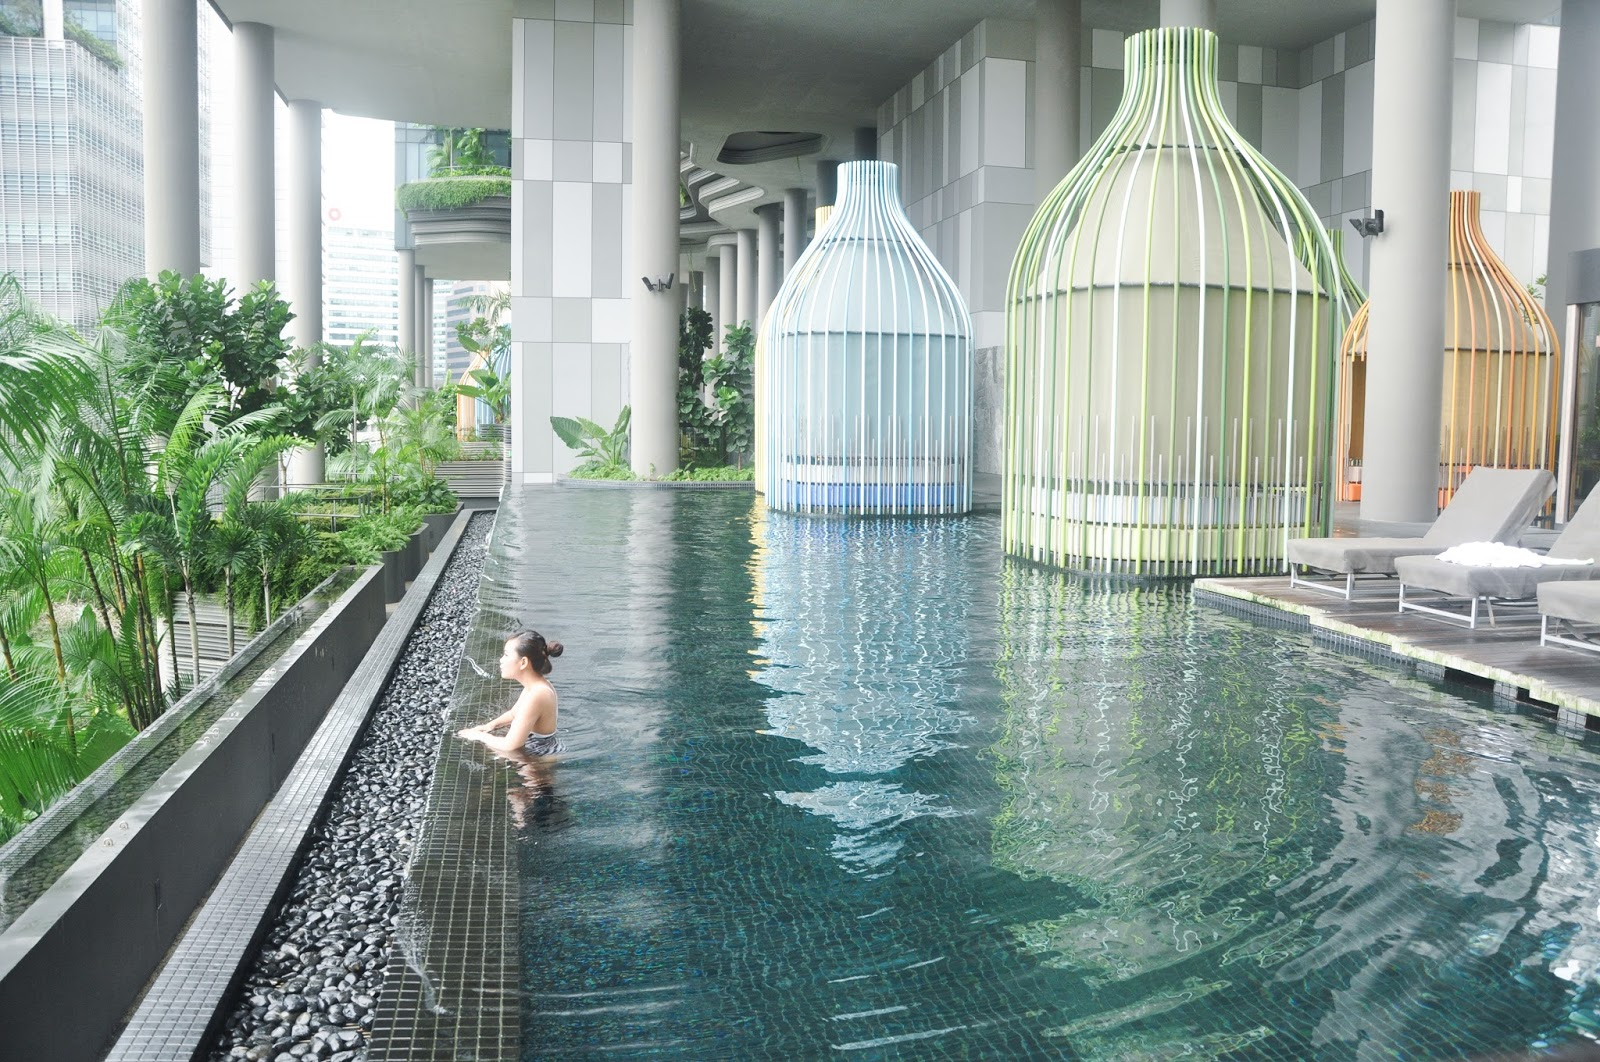 Travel staycation 2d1n at parkroyal on pickering - Park royal pickering swimming pool ...